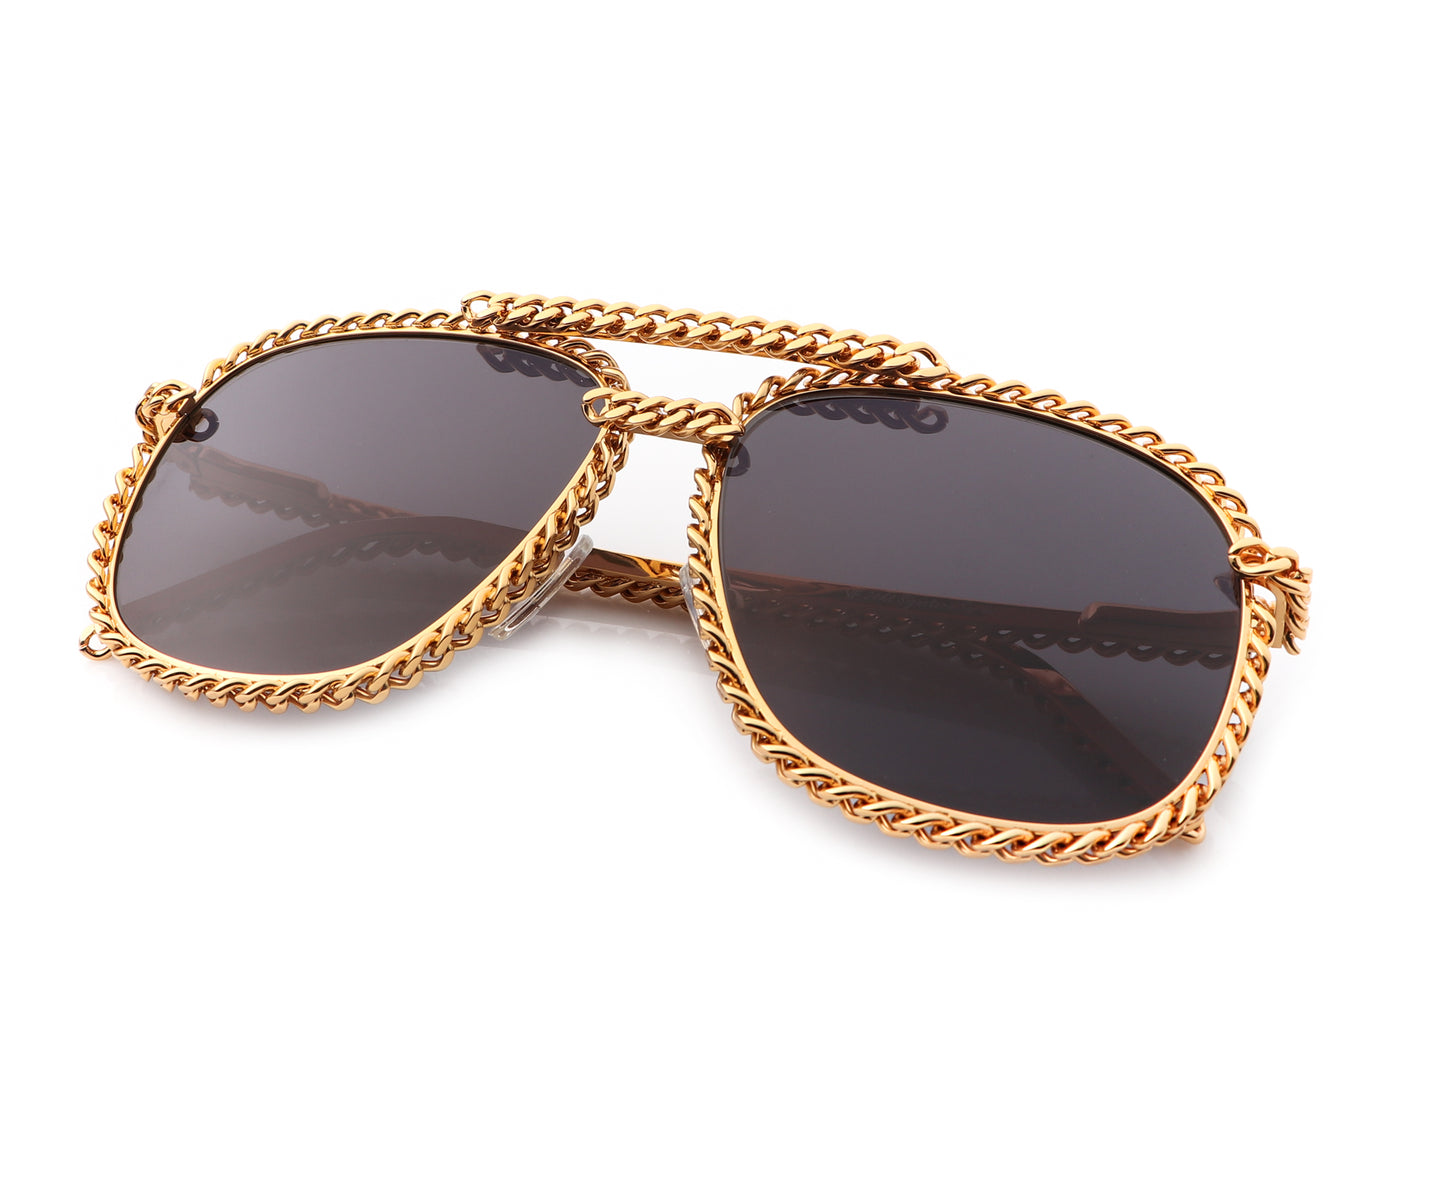 VF Full Cuban Snatch 24KT Gold (Black), VF Masterpiece , glasses frames, eyeglasses online, eyeglass frames, mens glasses, womens glasses, buy glasses online, designer eyeglasses, vintage sunglasses, retro sunglasses, vintage glasses, sunglass, eyeglass, glasses, lens, vintage frames company, vf